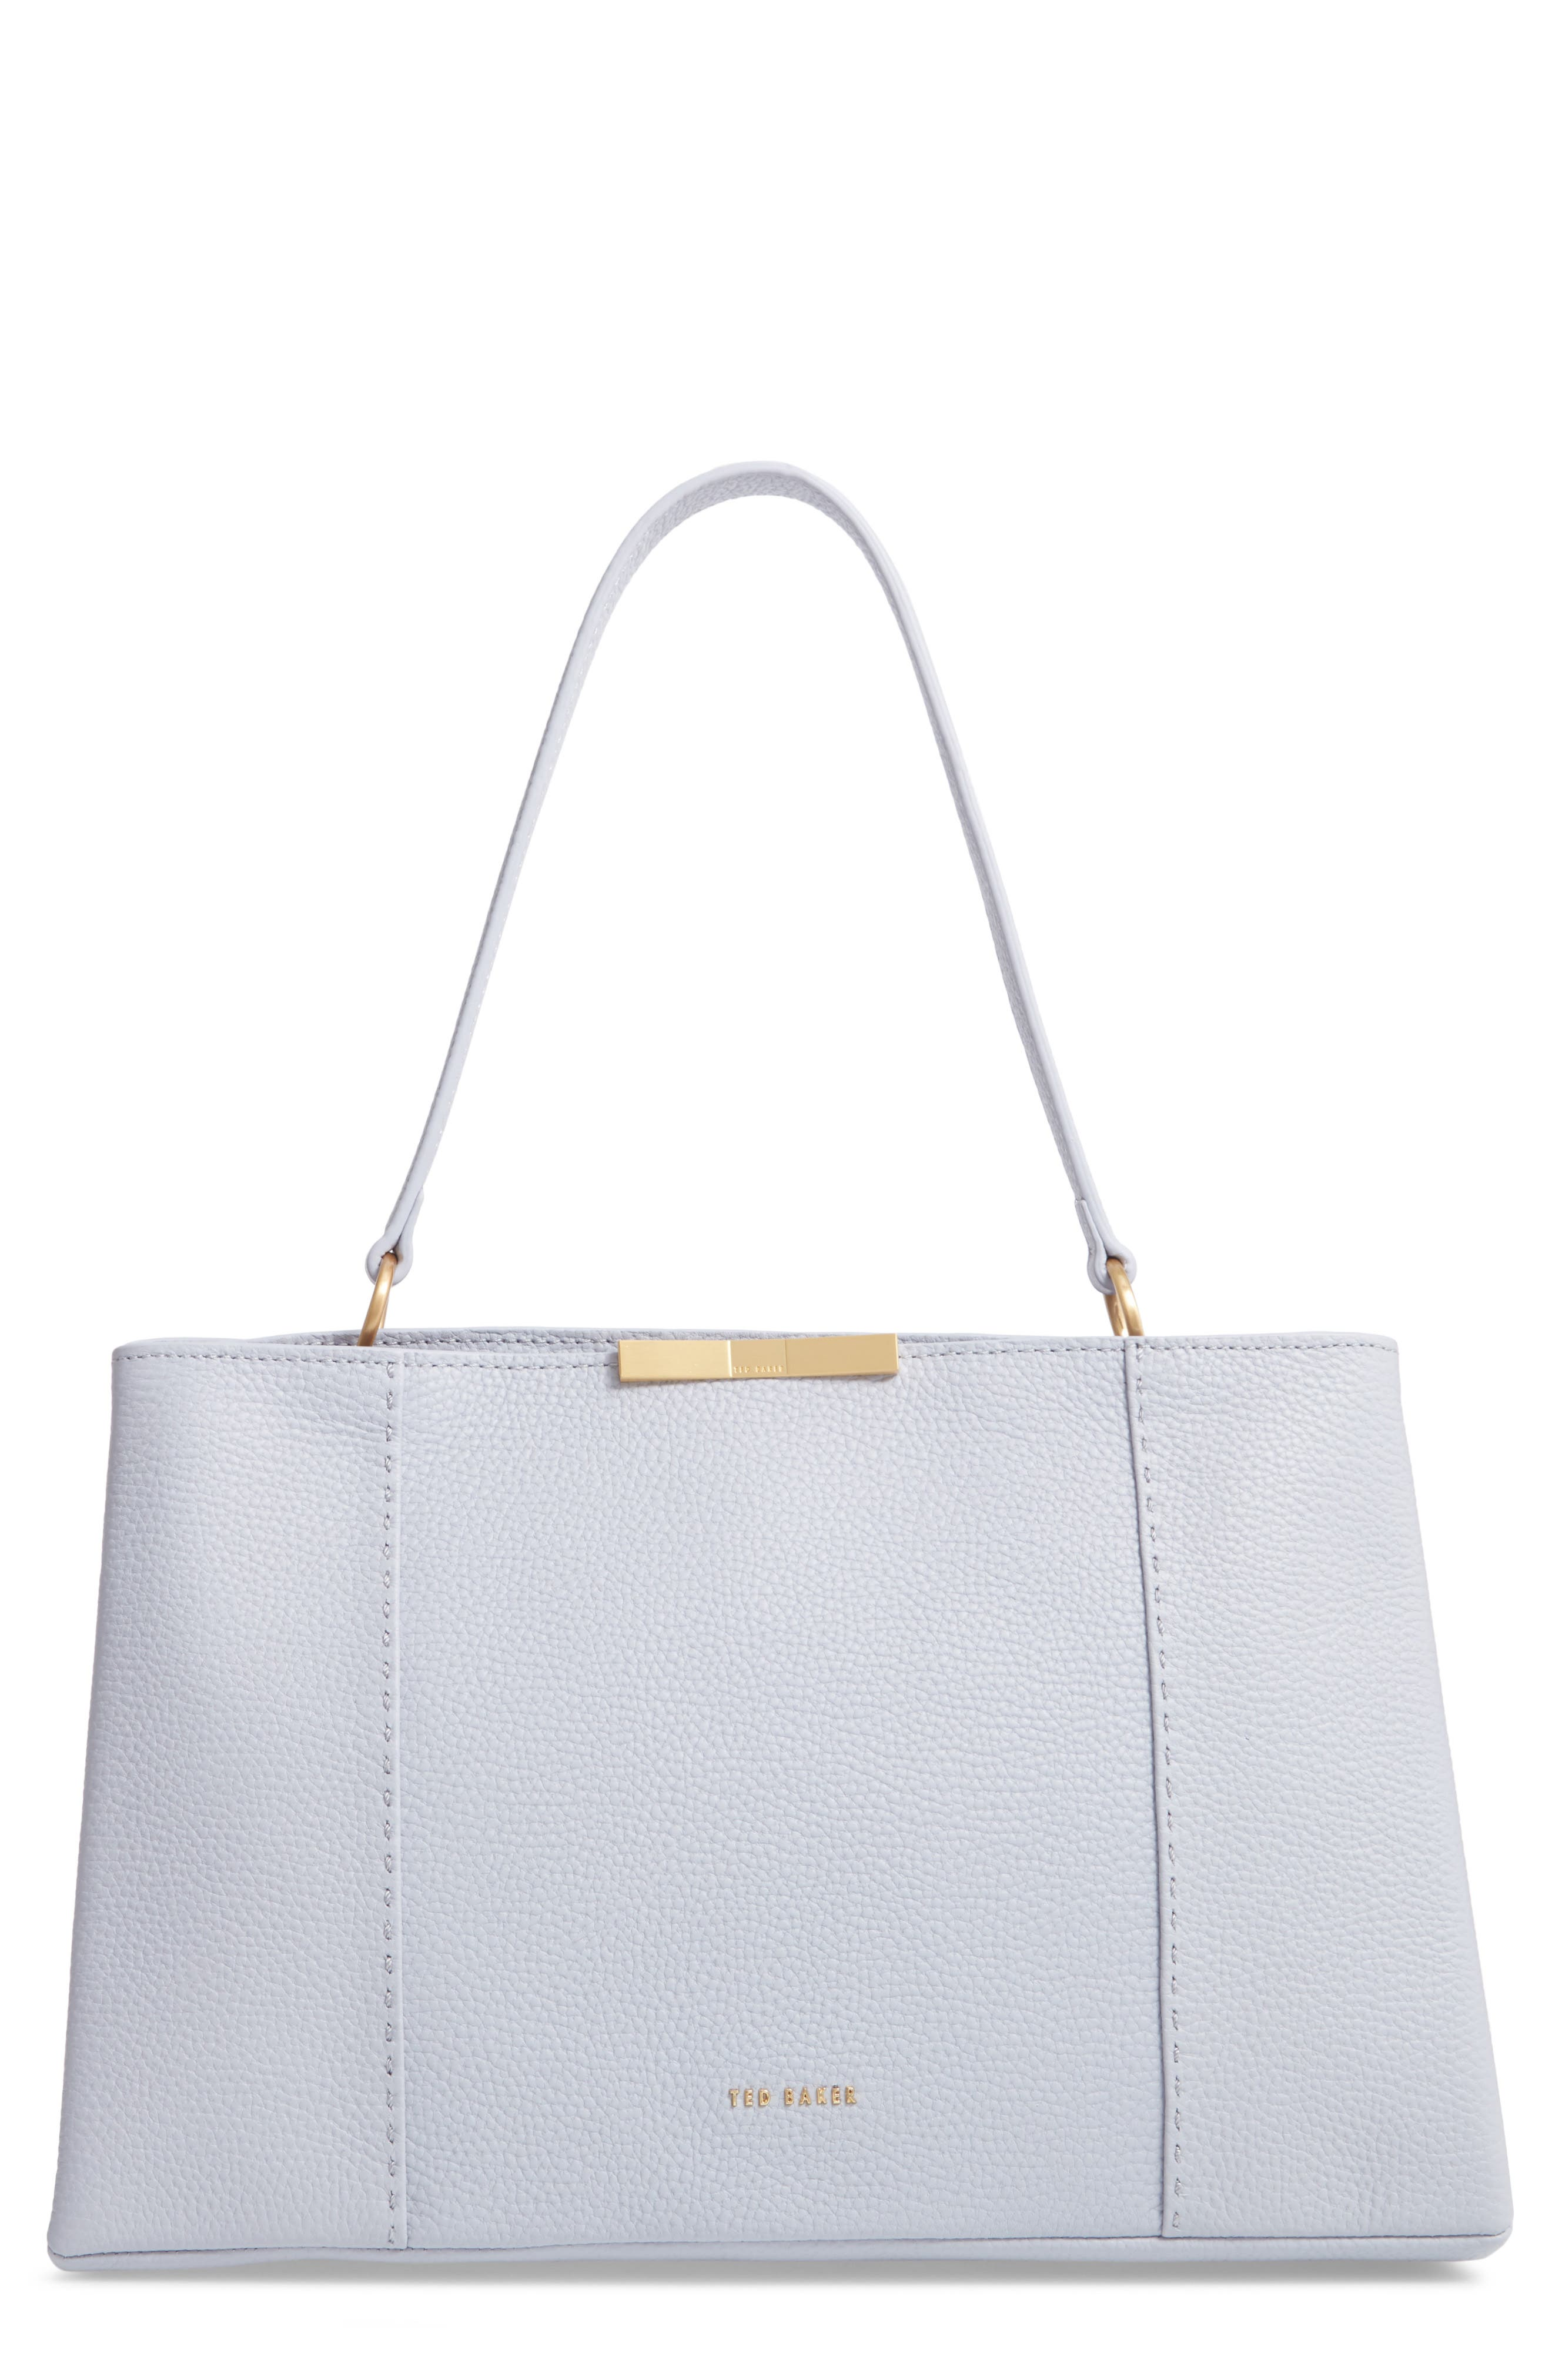 TED BAKER LONDON Camieli Bow Tote, Main, color, PL-BLUE